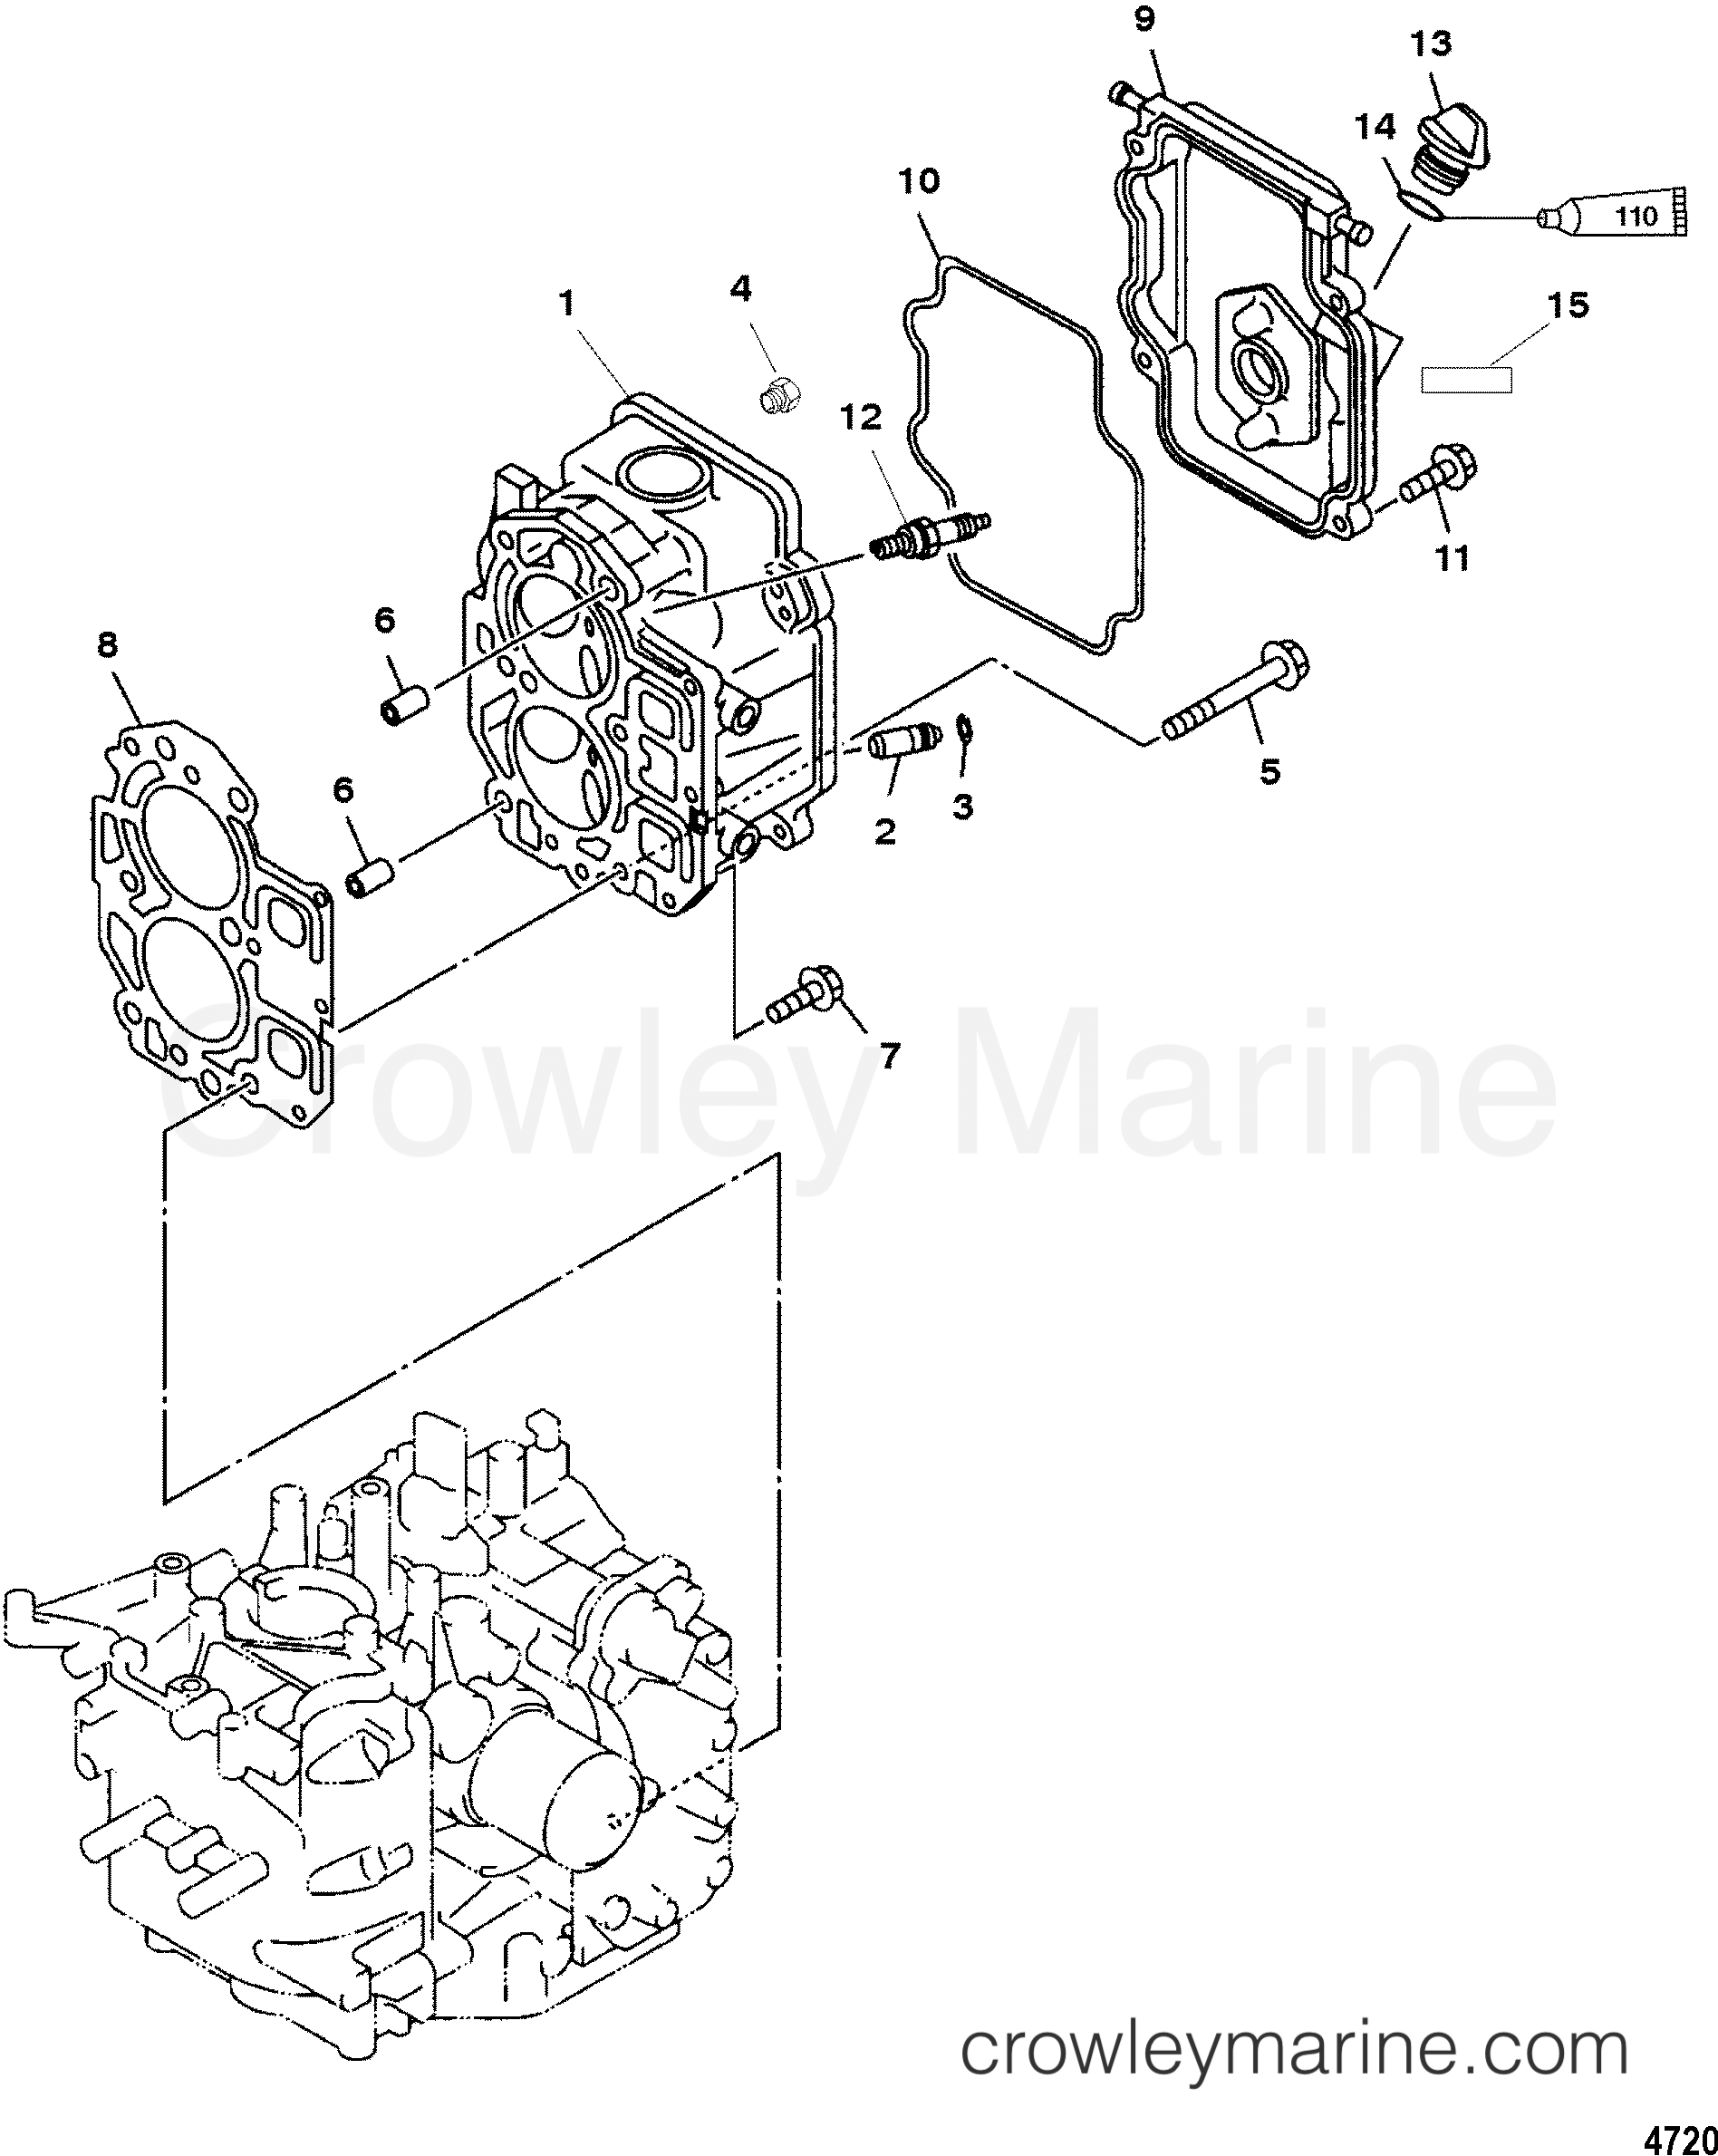 2003 Mariner Outboard 9.9 [ML 4] - 7F10213MD CYLINDER HEAD section